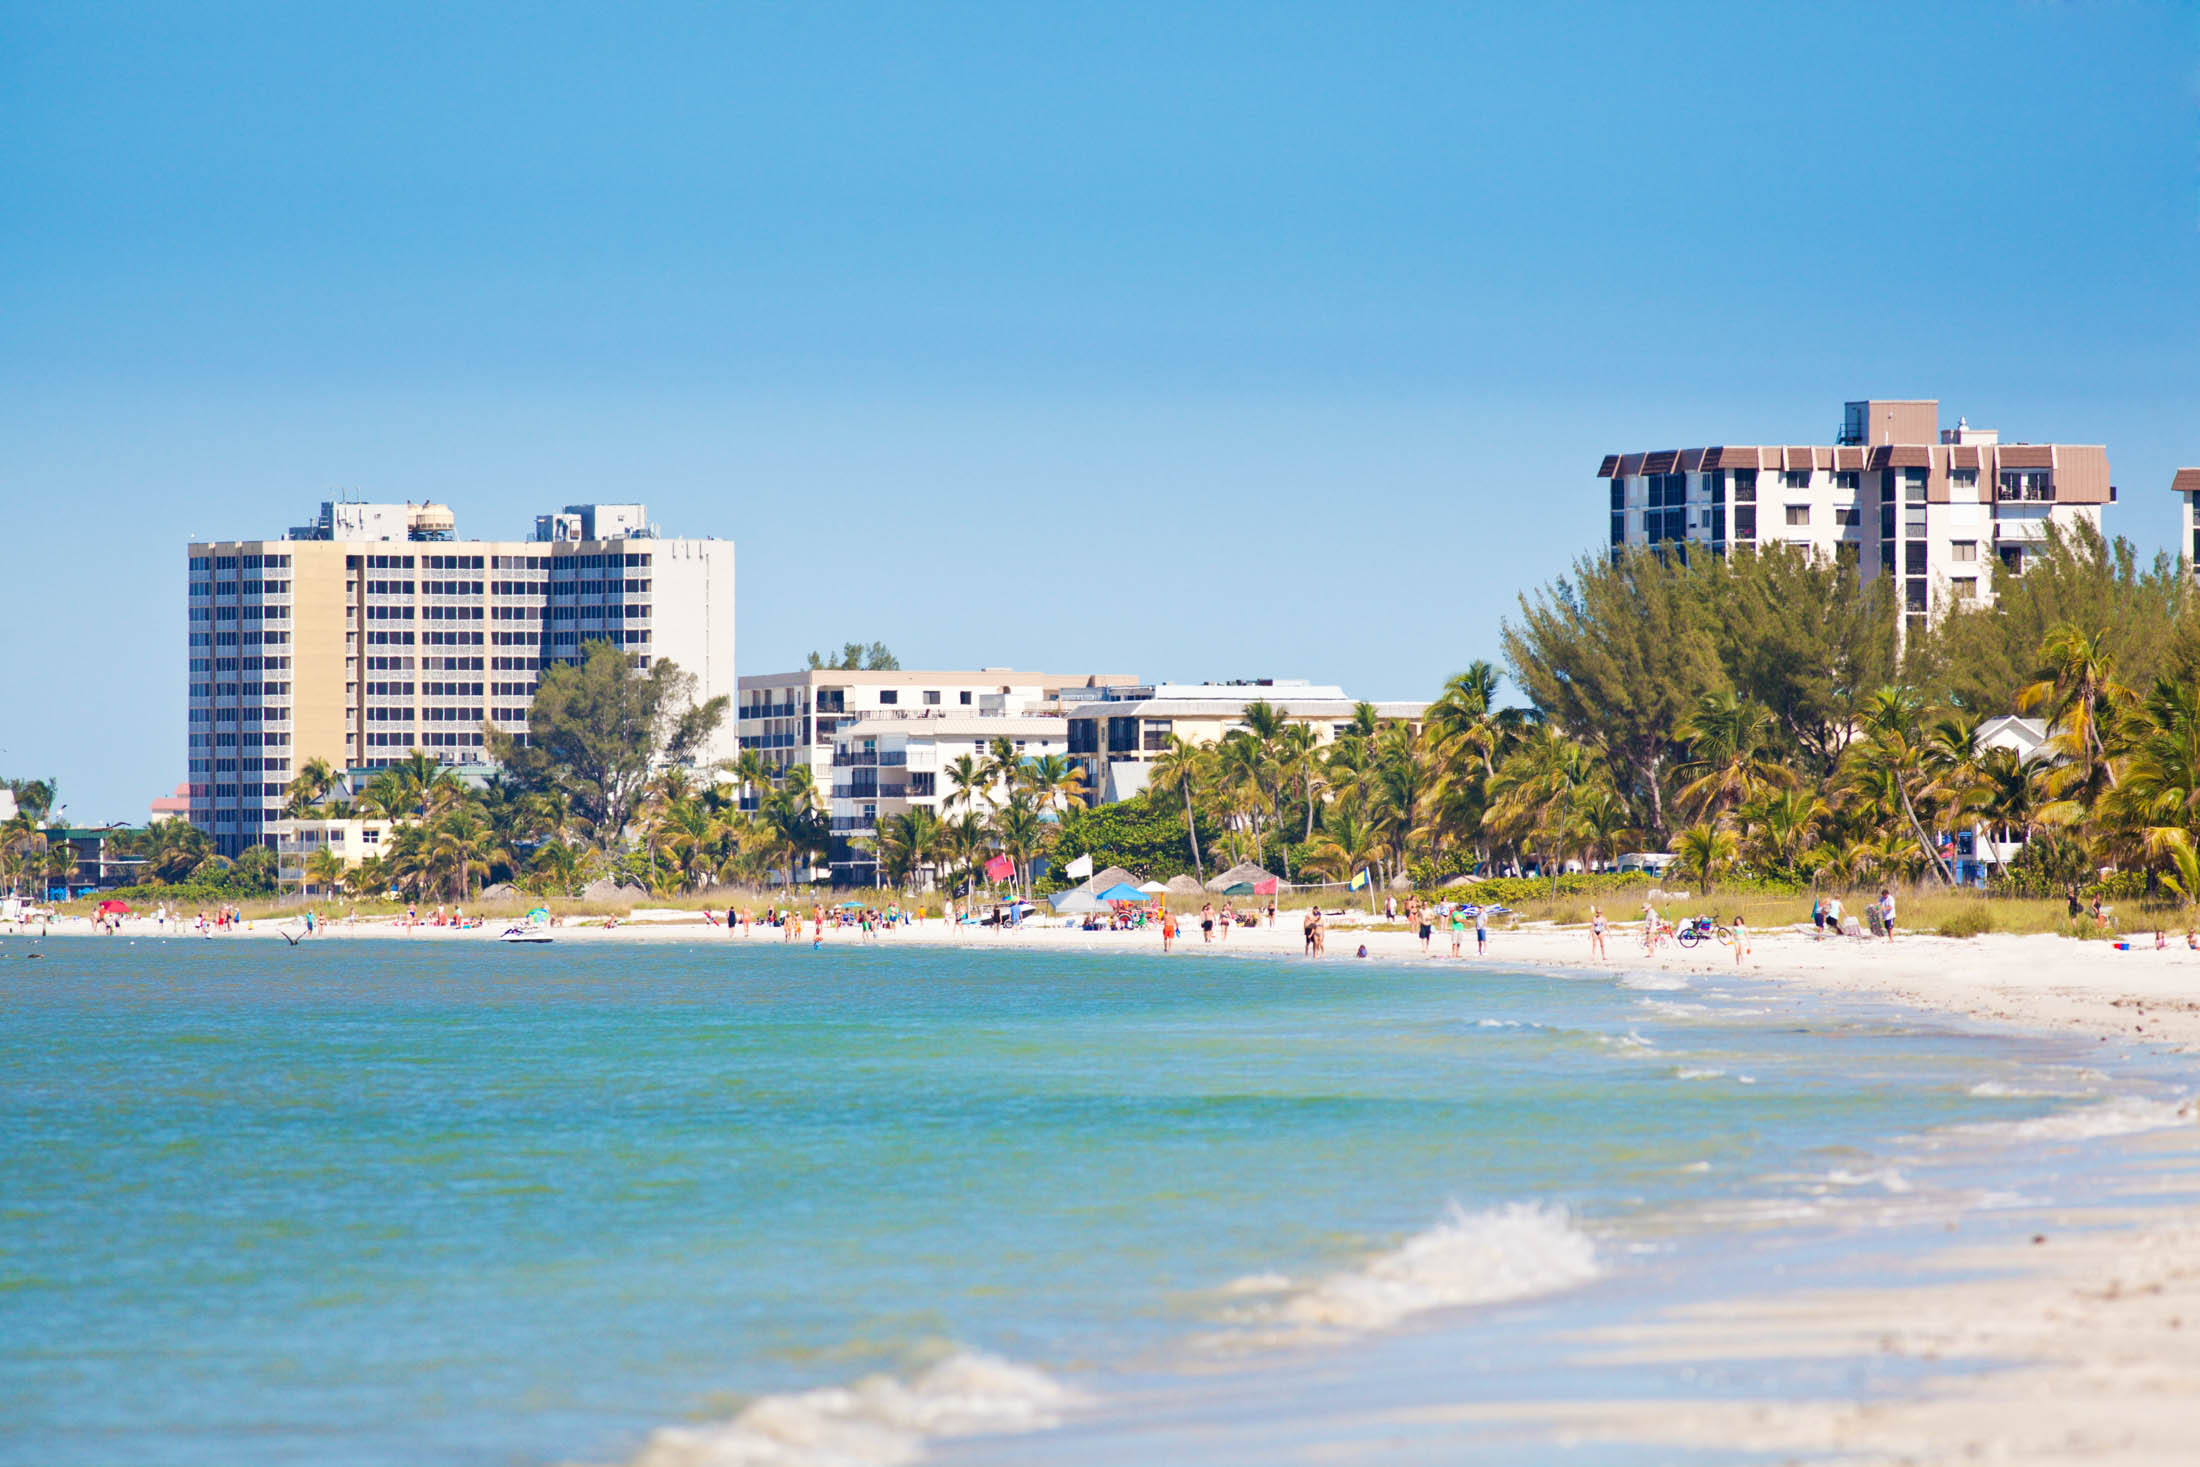 Fort Meyers Beach of Florida with Resort Hotels and Toruist